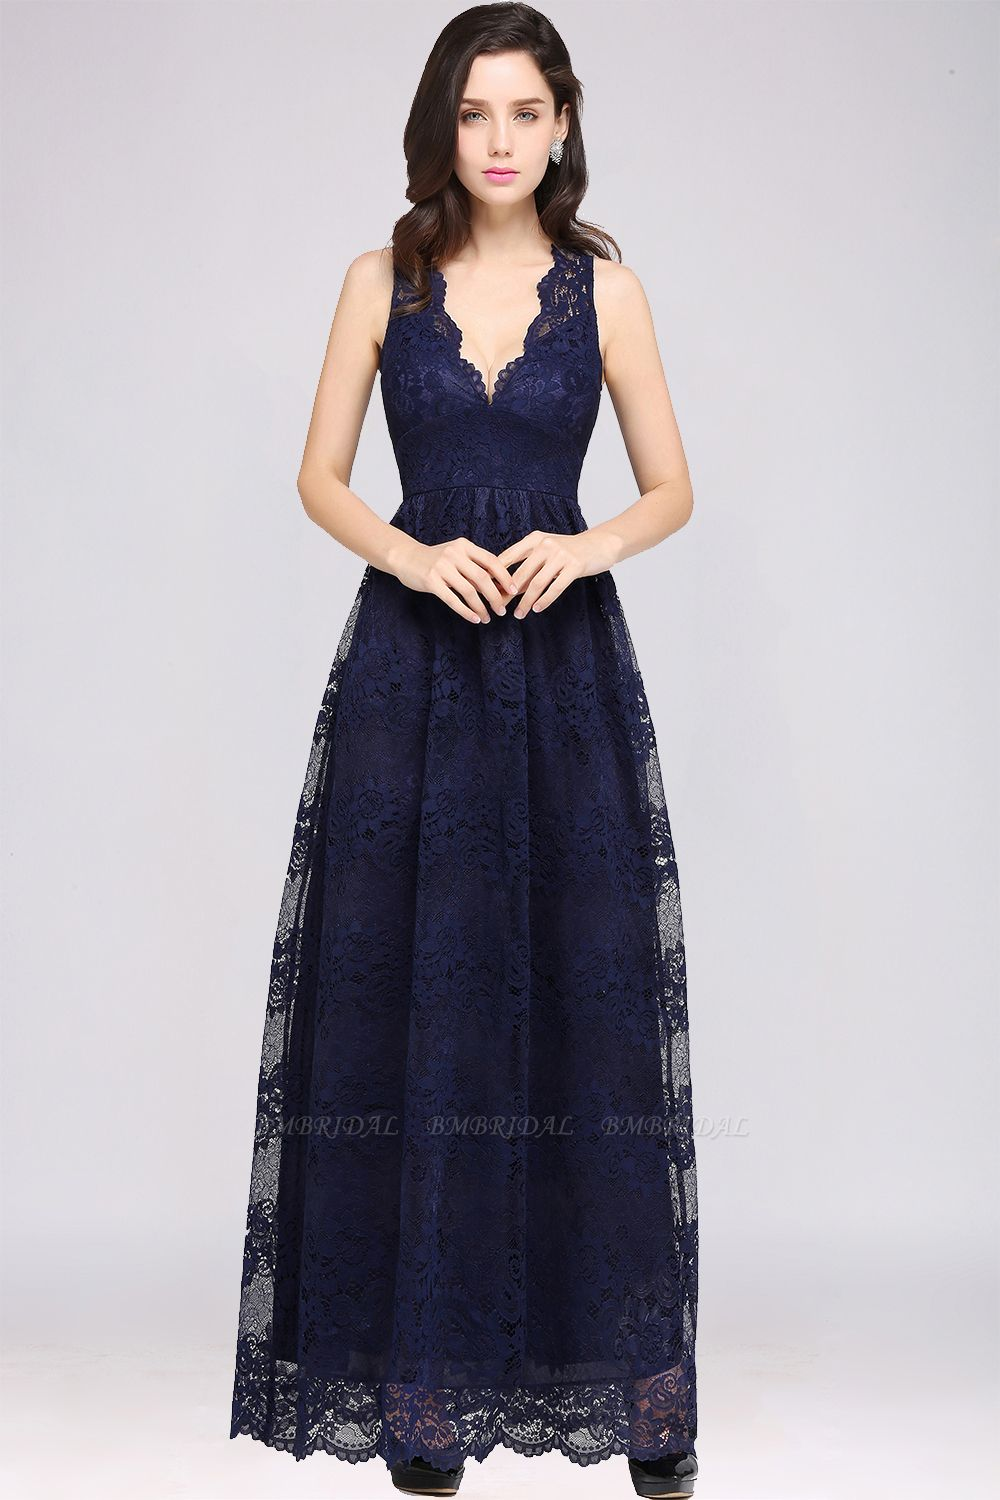 Chic Sheath V-Neck Navy Lace Bridesmaid Dresses Online In Stock